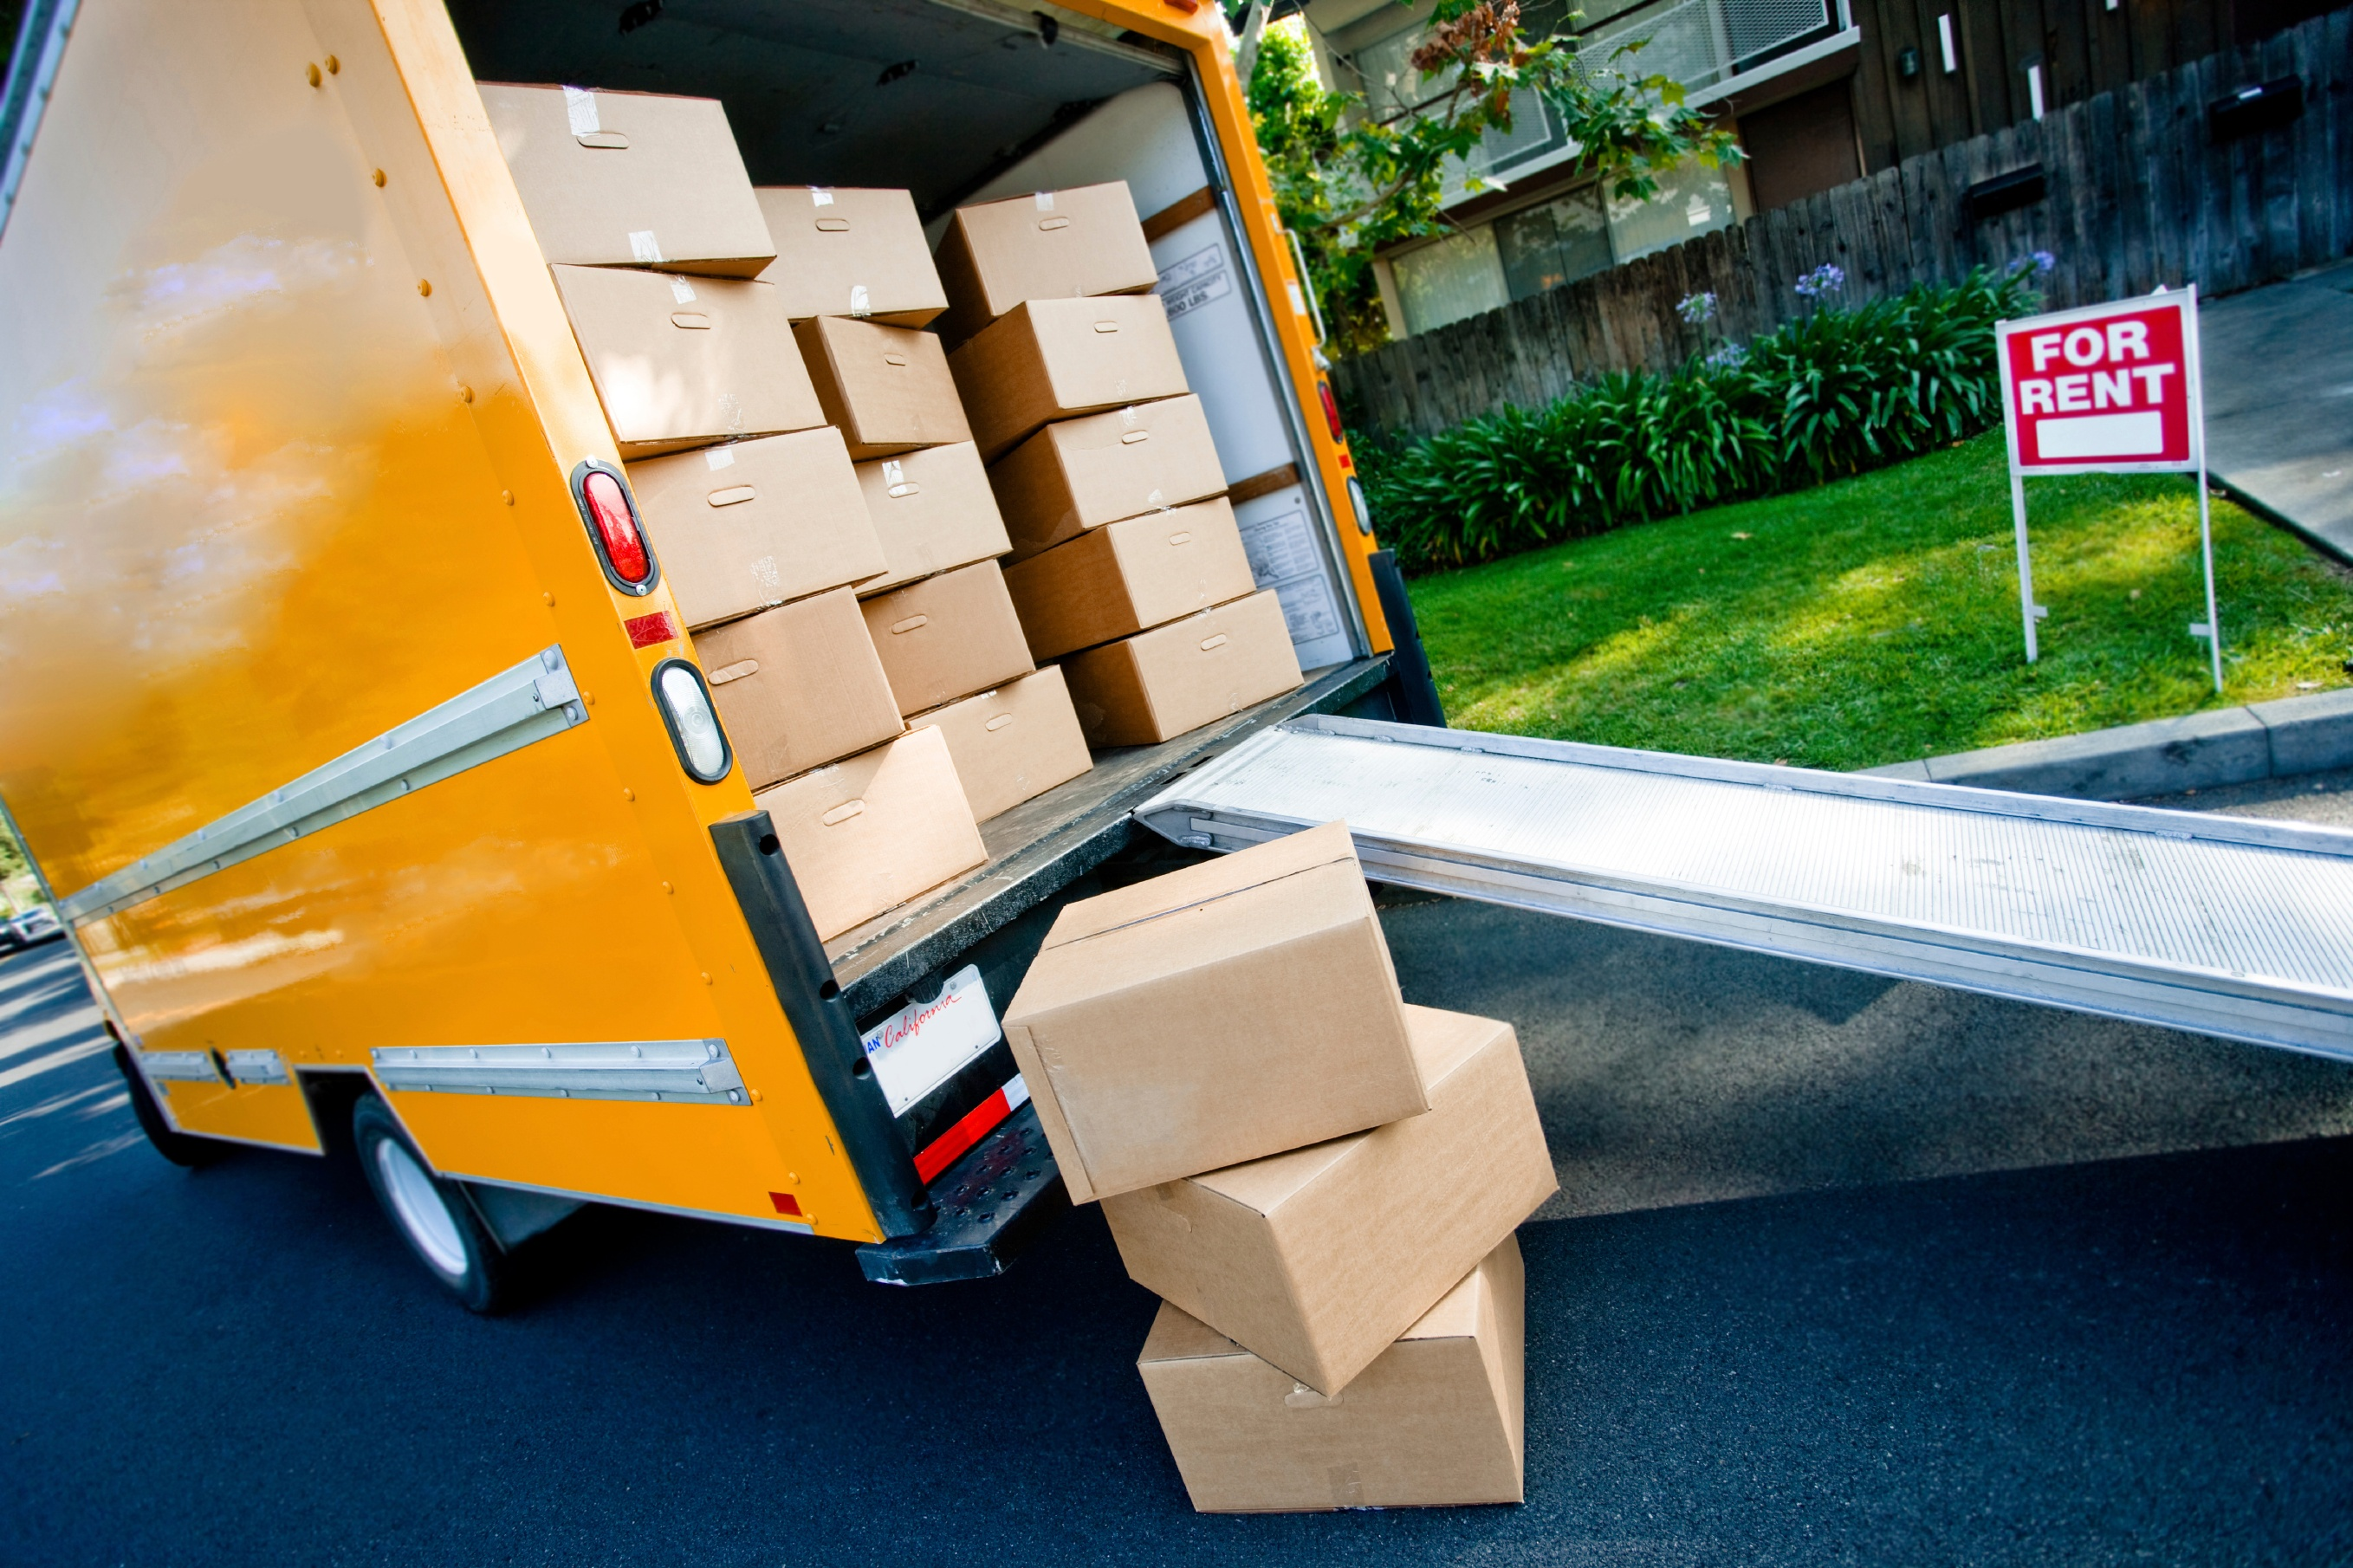 Van loaded with boxes 31.03.11 large.jpg